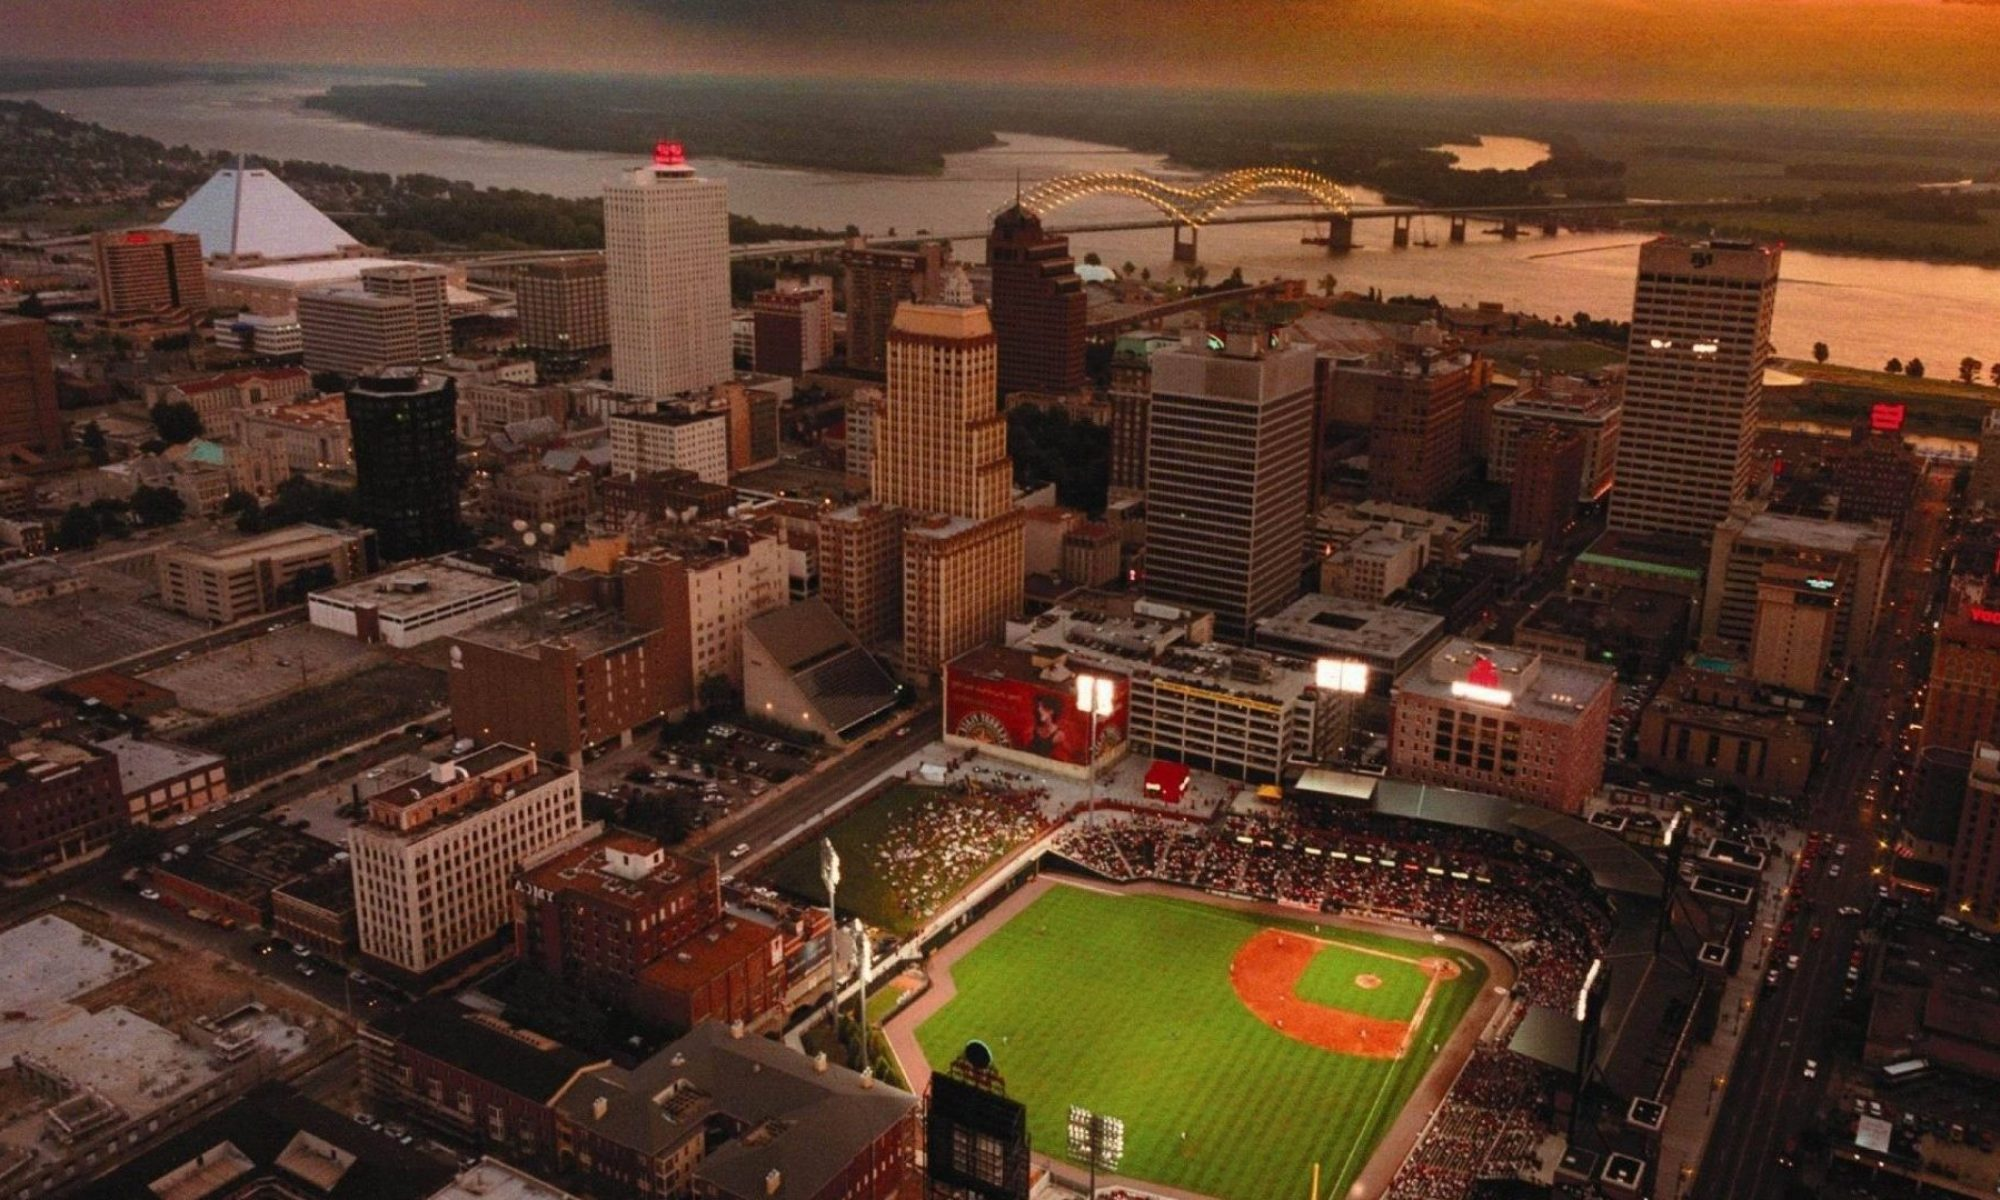 Easter Flights to Memphis, Starting from $79, Call Now +1-855-948-6886